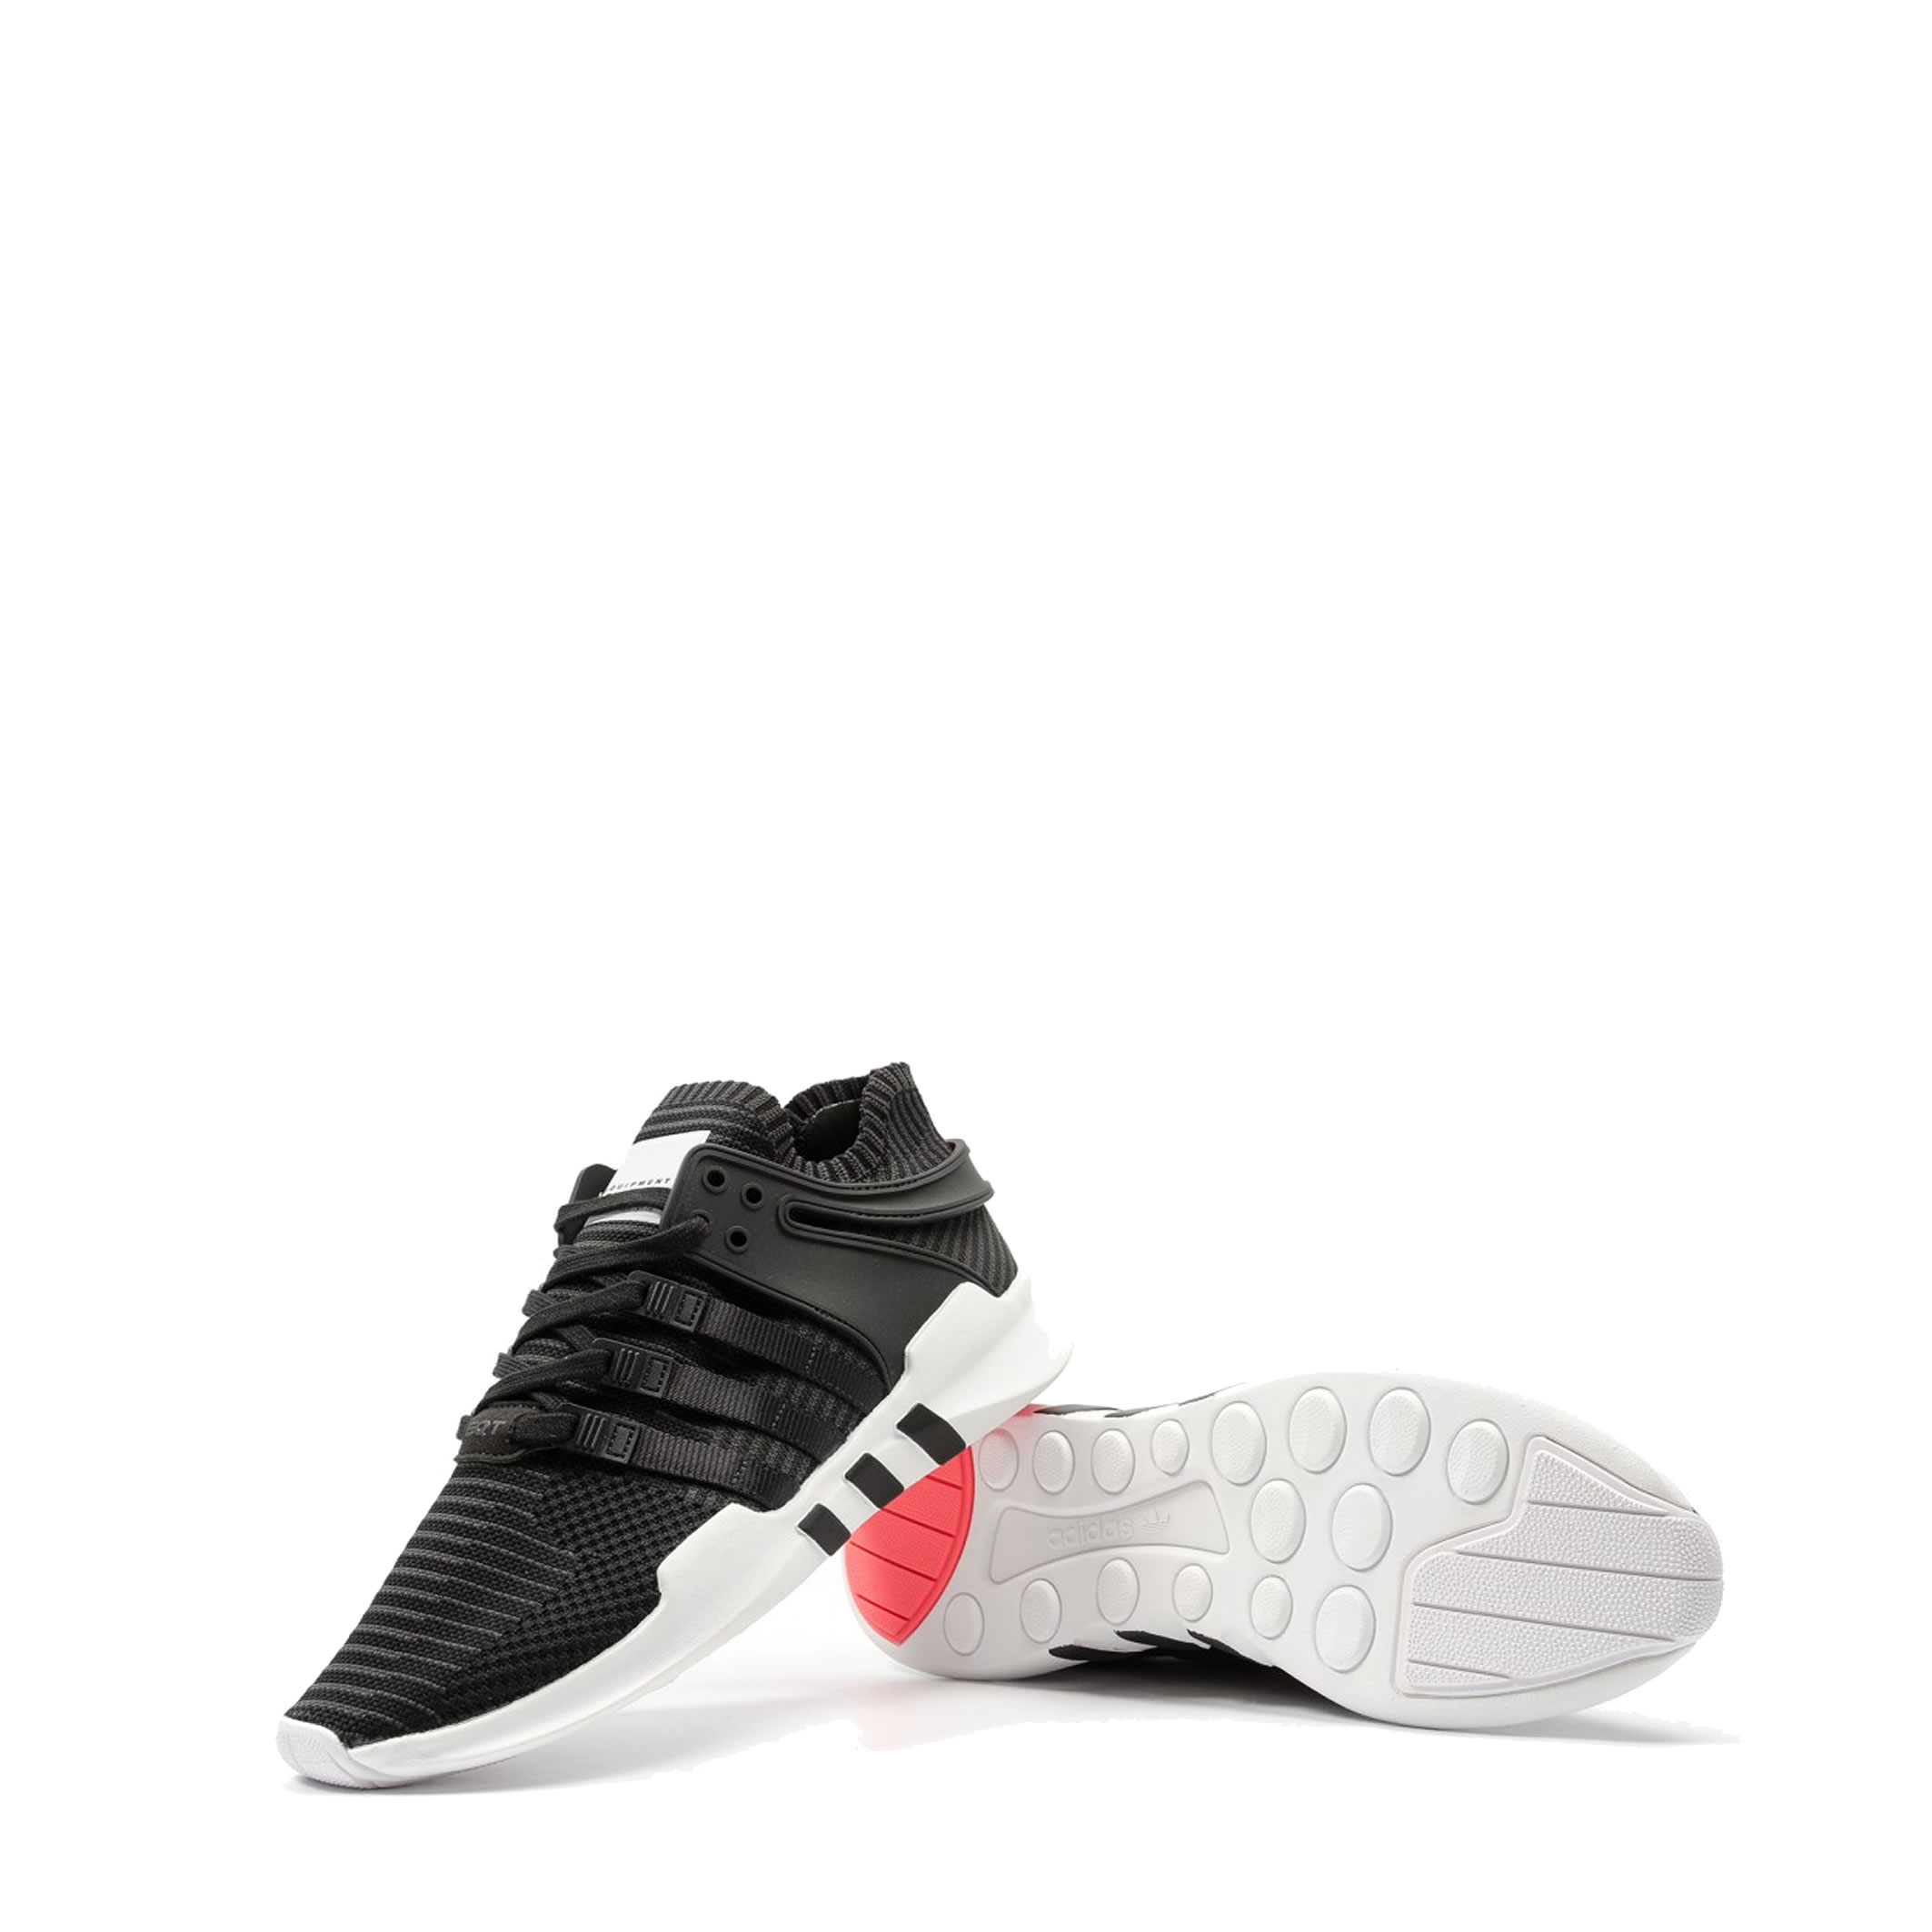 the latest 19798 250cd Adidas EQT Support ADV Primeknit Trainers Black/White/Pink